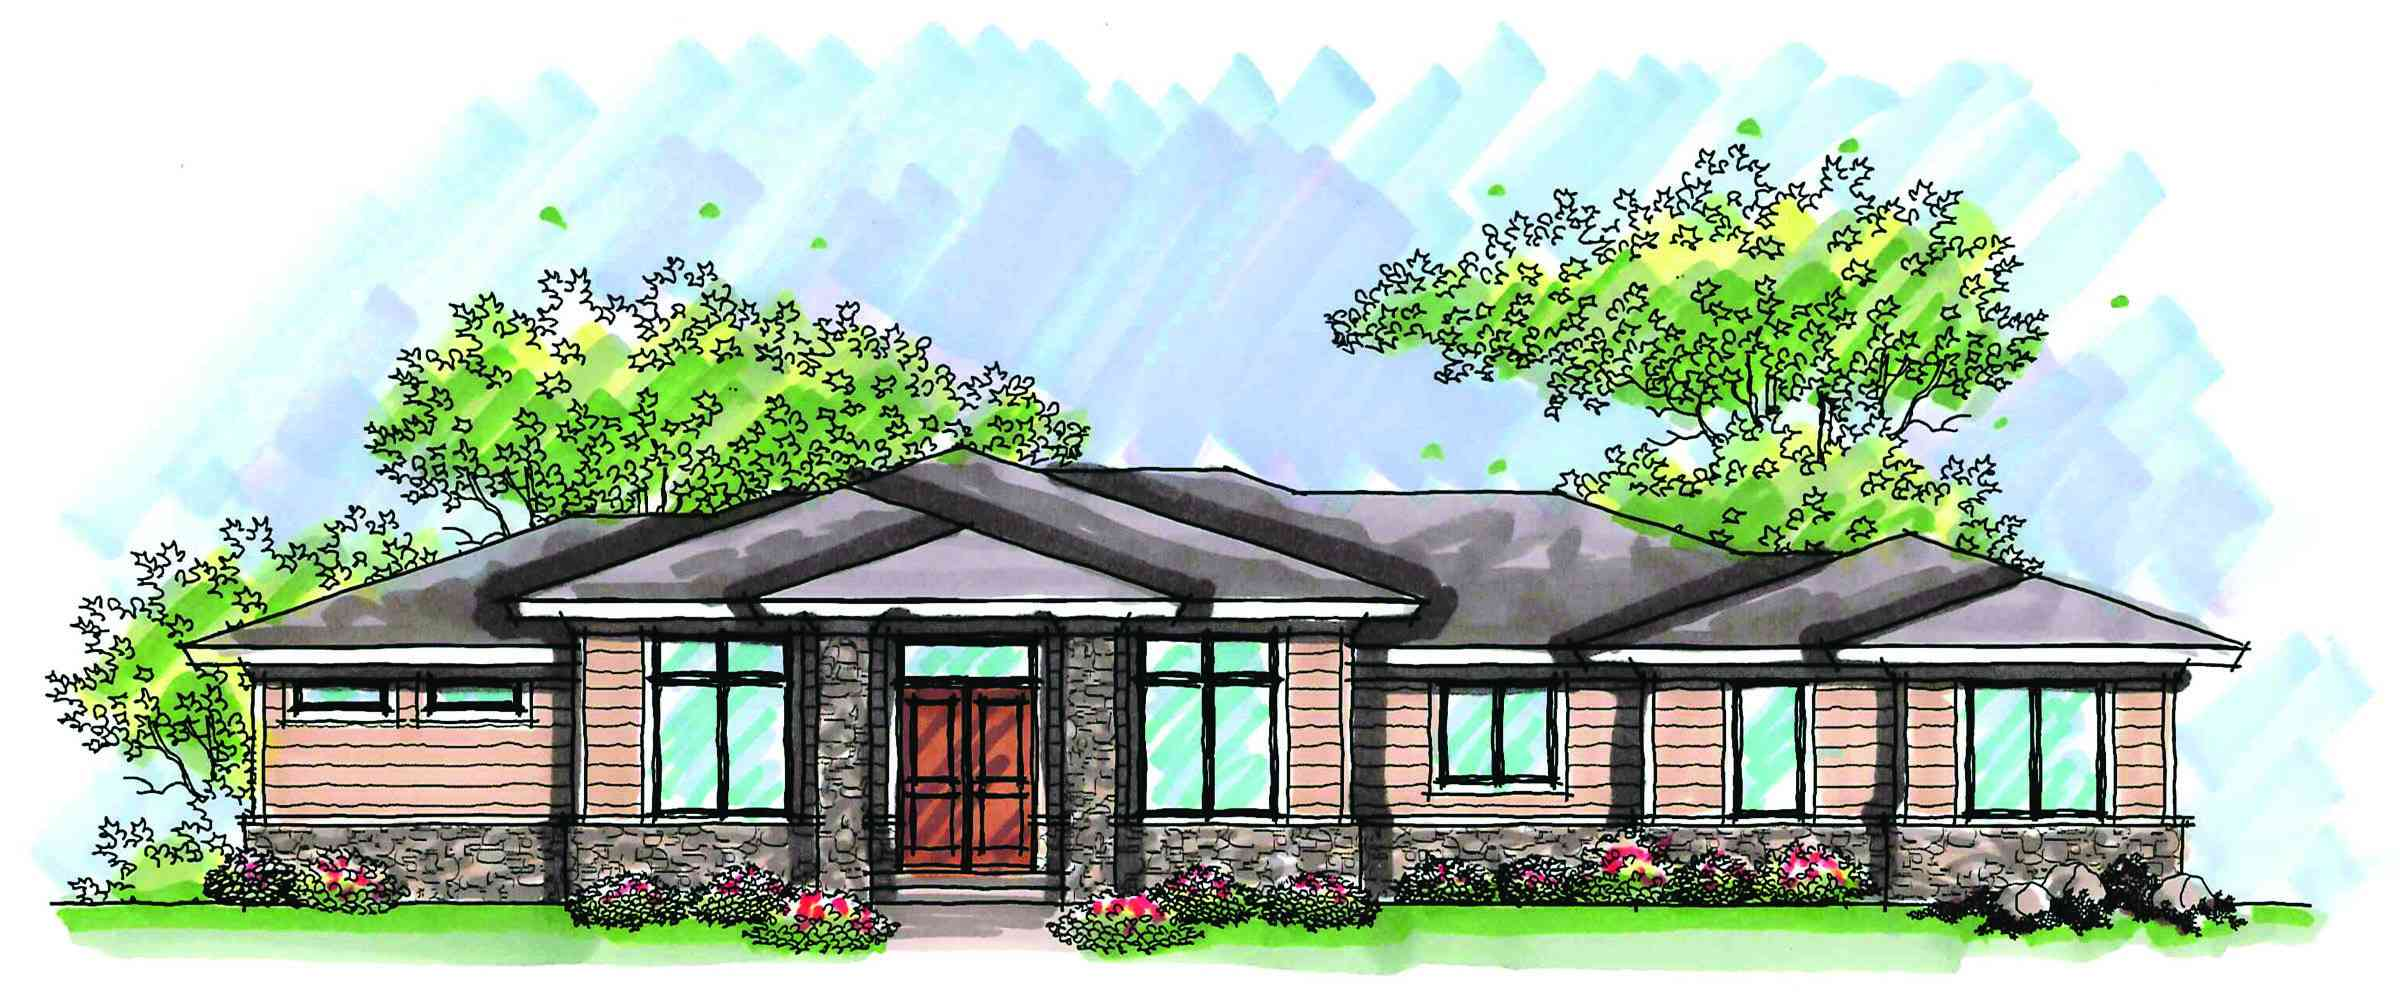 Expandable prairie style home plan 89754ah for Expandable home designs